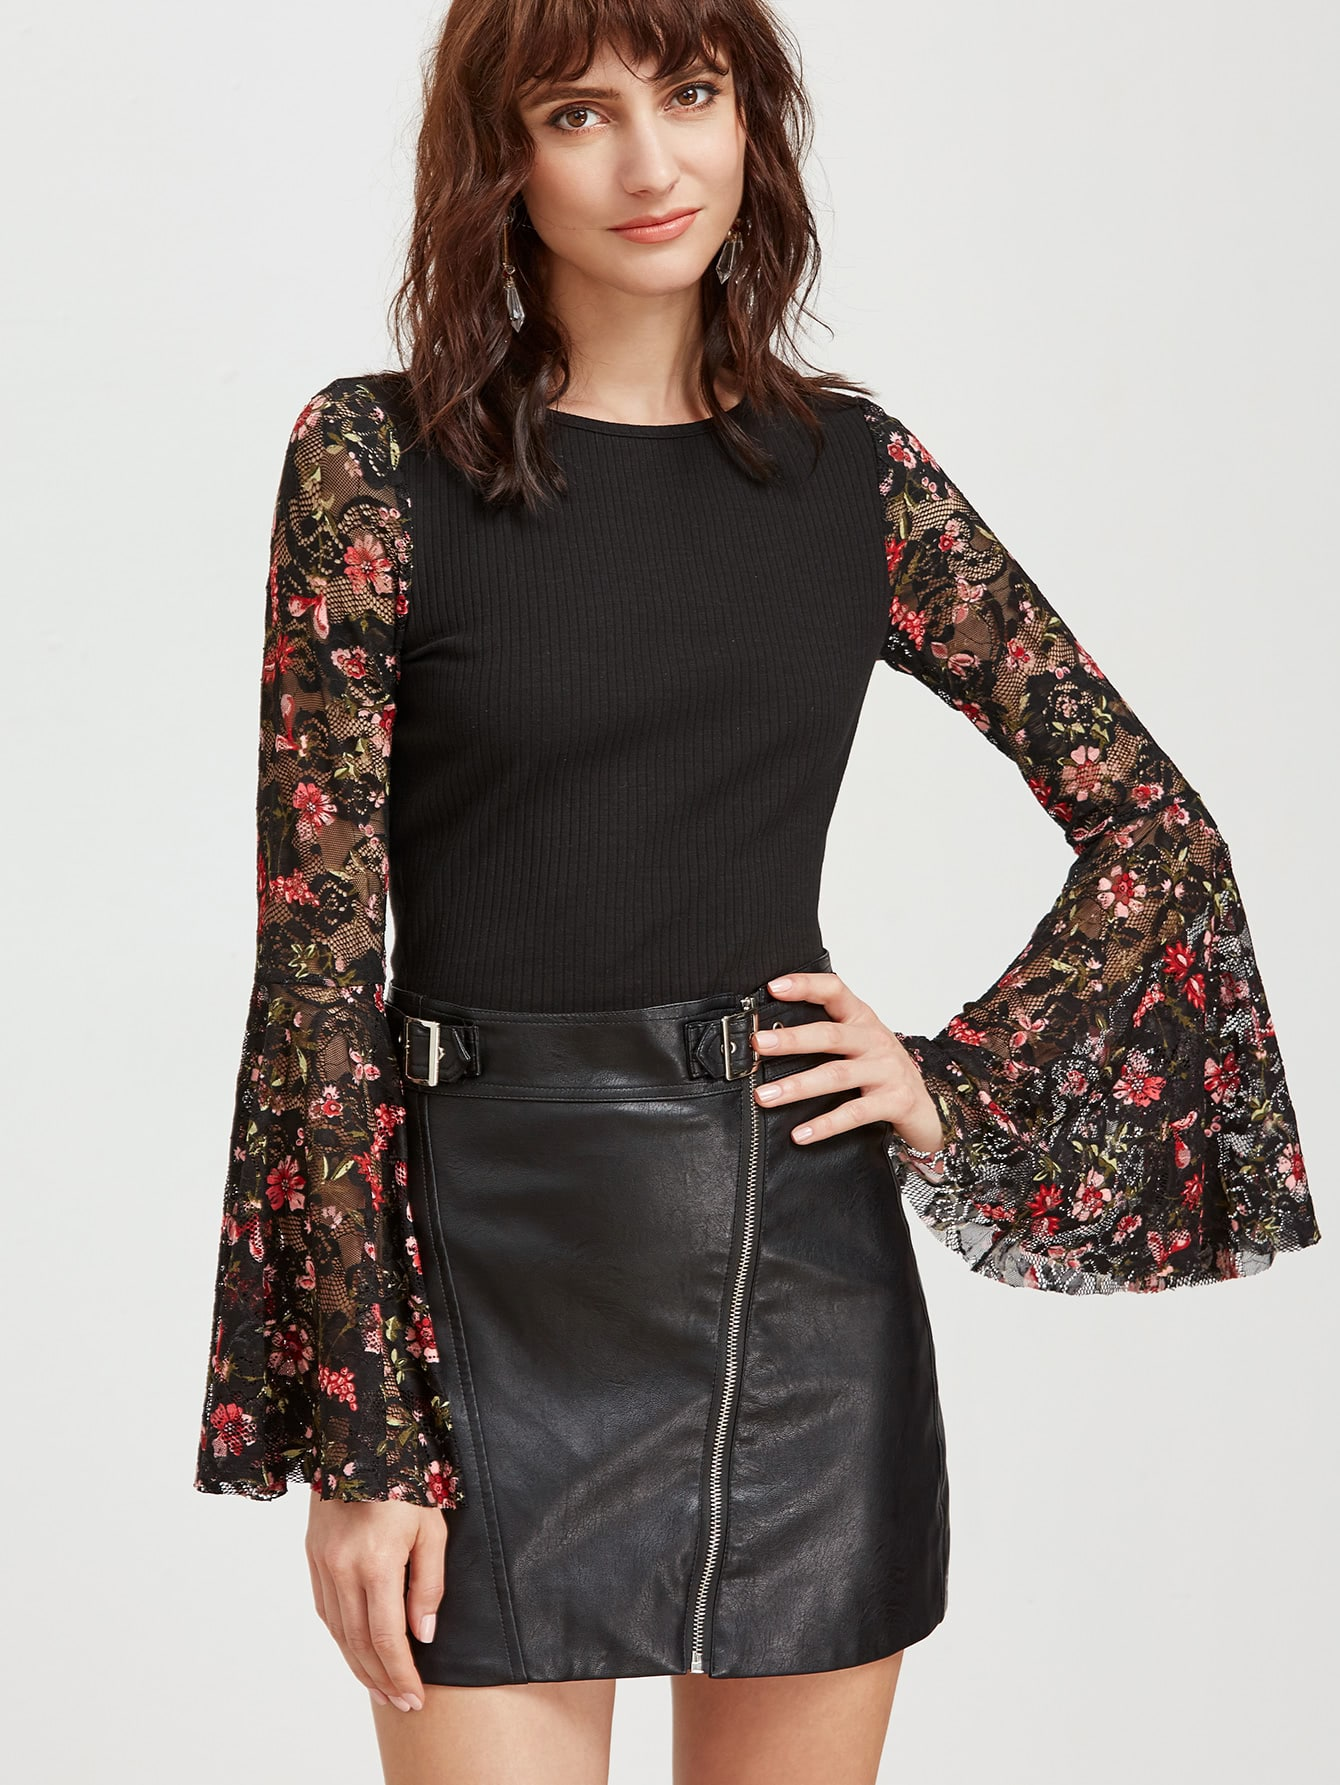 Black Floral Lace Bell Sleeve Ribbed Top blouse170214707